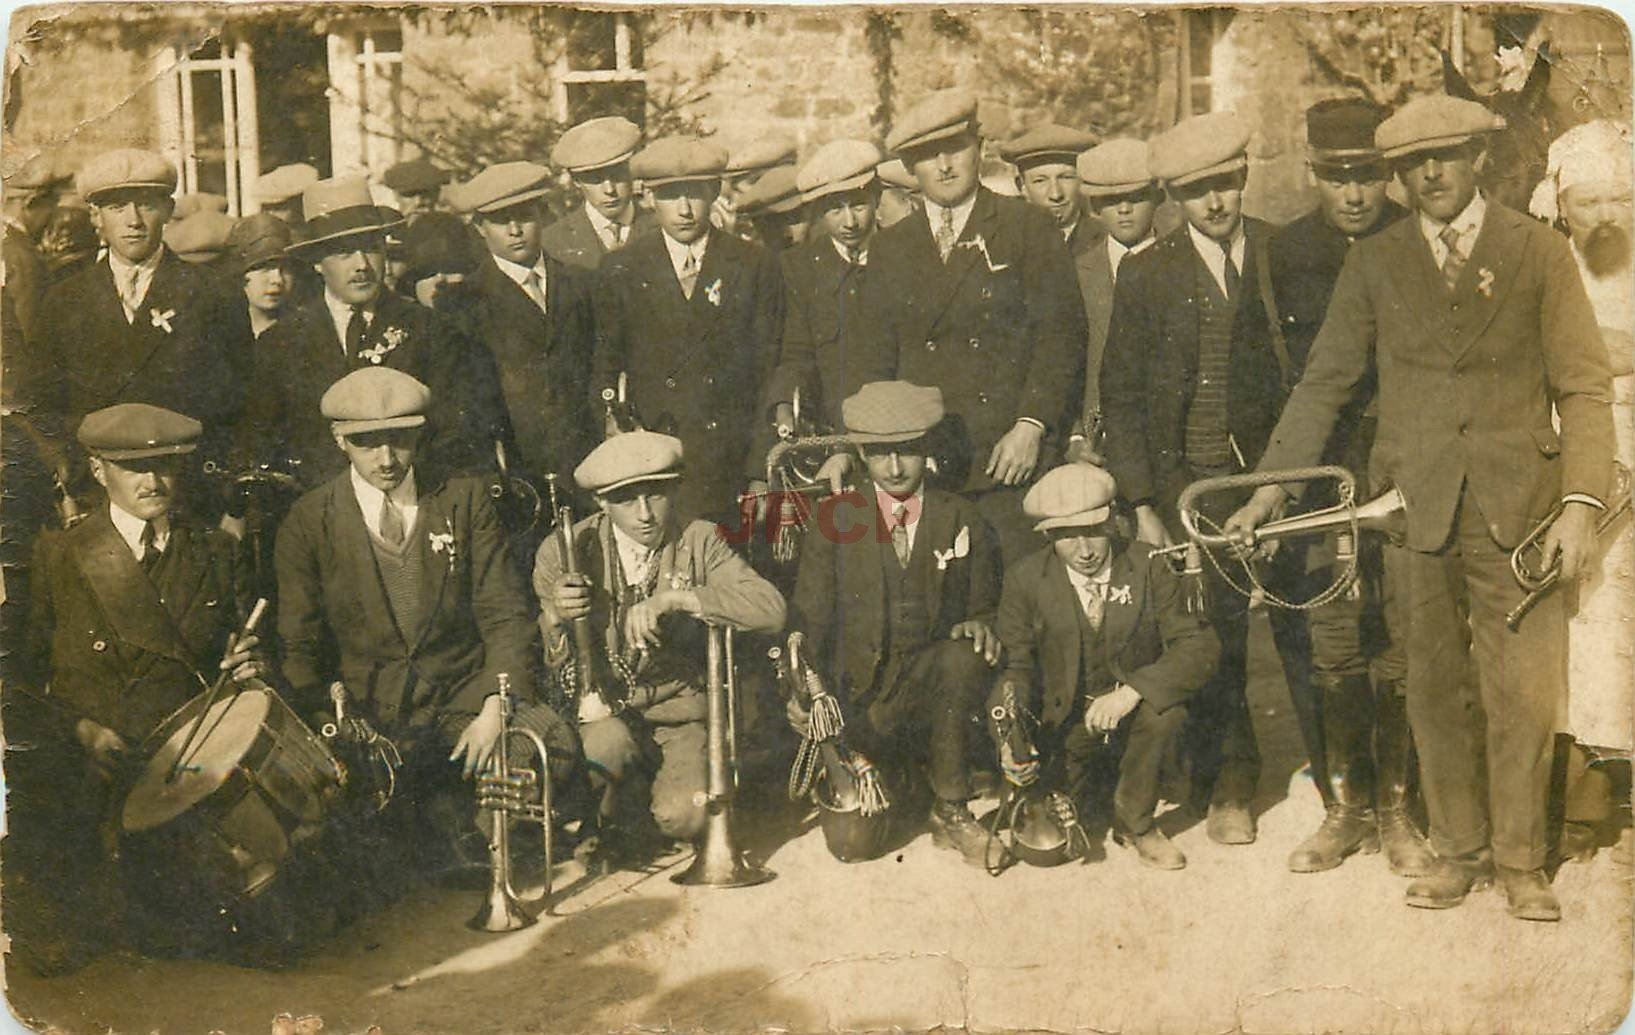 50 SAINT ROMPHAIRE. Photo carte postale de Conscrits Musiciens 1928